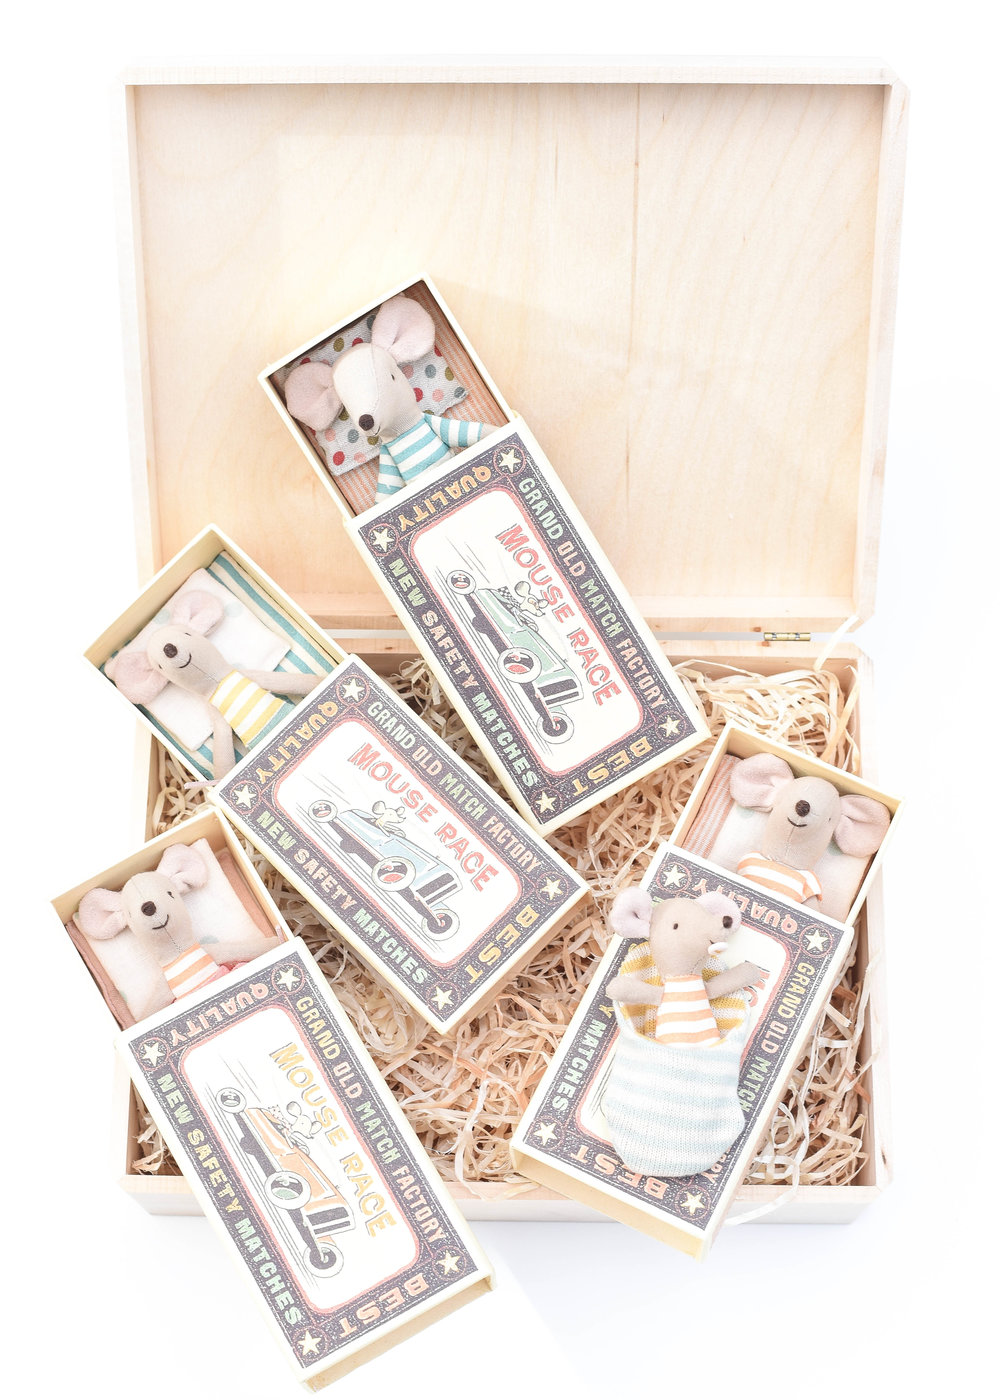 Mouse Family Gift Set - What's more fun than a family of mice? Perfect for every day play, on the go and in the home. These heirloom quality pieces will quickly become treasured friends! Sold individually, each come with their own matchbox bed and charming bedding. For purchase info, click links below.L:R | Little Sister Mouse | Little Brother Mouse | Big Brother Mouse | Big Sister Mouse | Baby Mouse |Our go to gift wrap this holiday, shown here:Unfinished Walnut Box (2 pack) | Aspen Wood Excelsior (BULK)Only needing to wrap one present?Individual Unfinished Walnut Box | Aspen Wood Excelsior (4 oz bag)